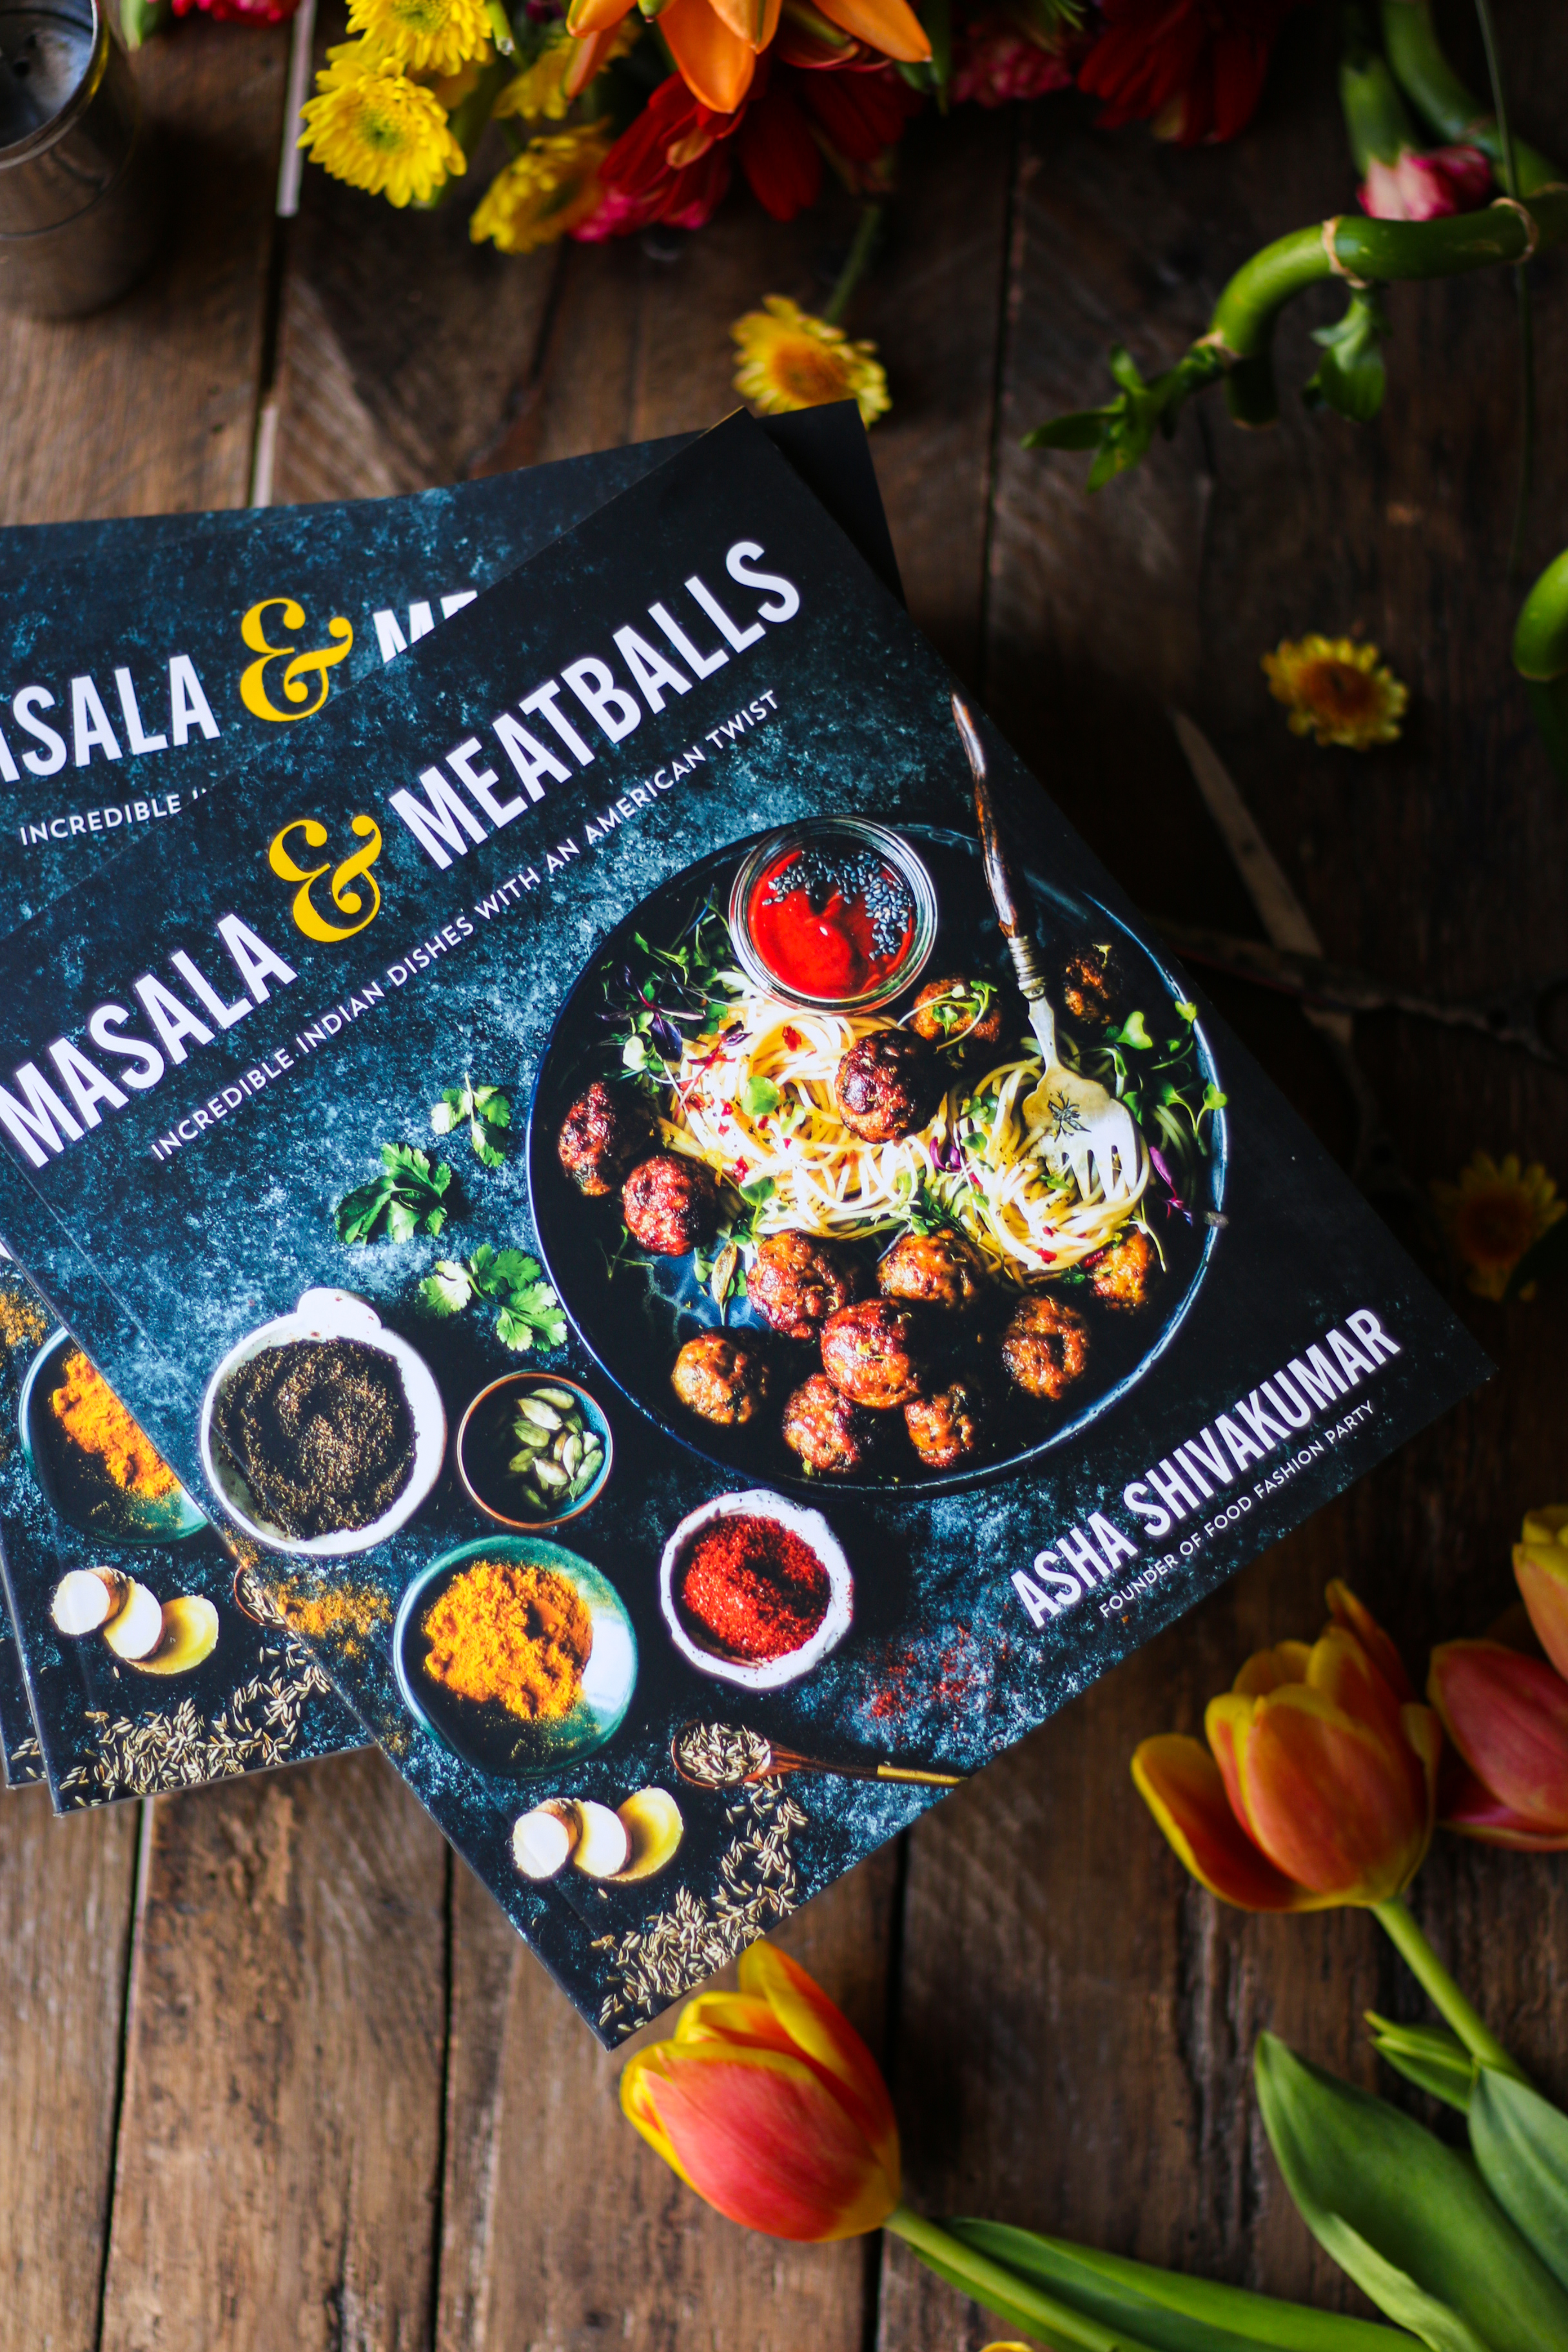 MASALA AND MEATBALLS COOKBOOK + Giveaway |foodfashionparty| #giveaway #cookbook